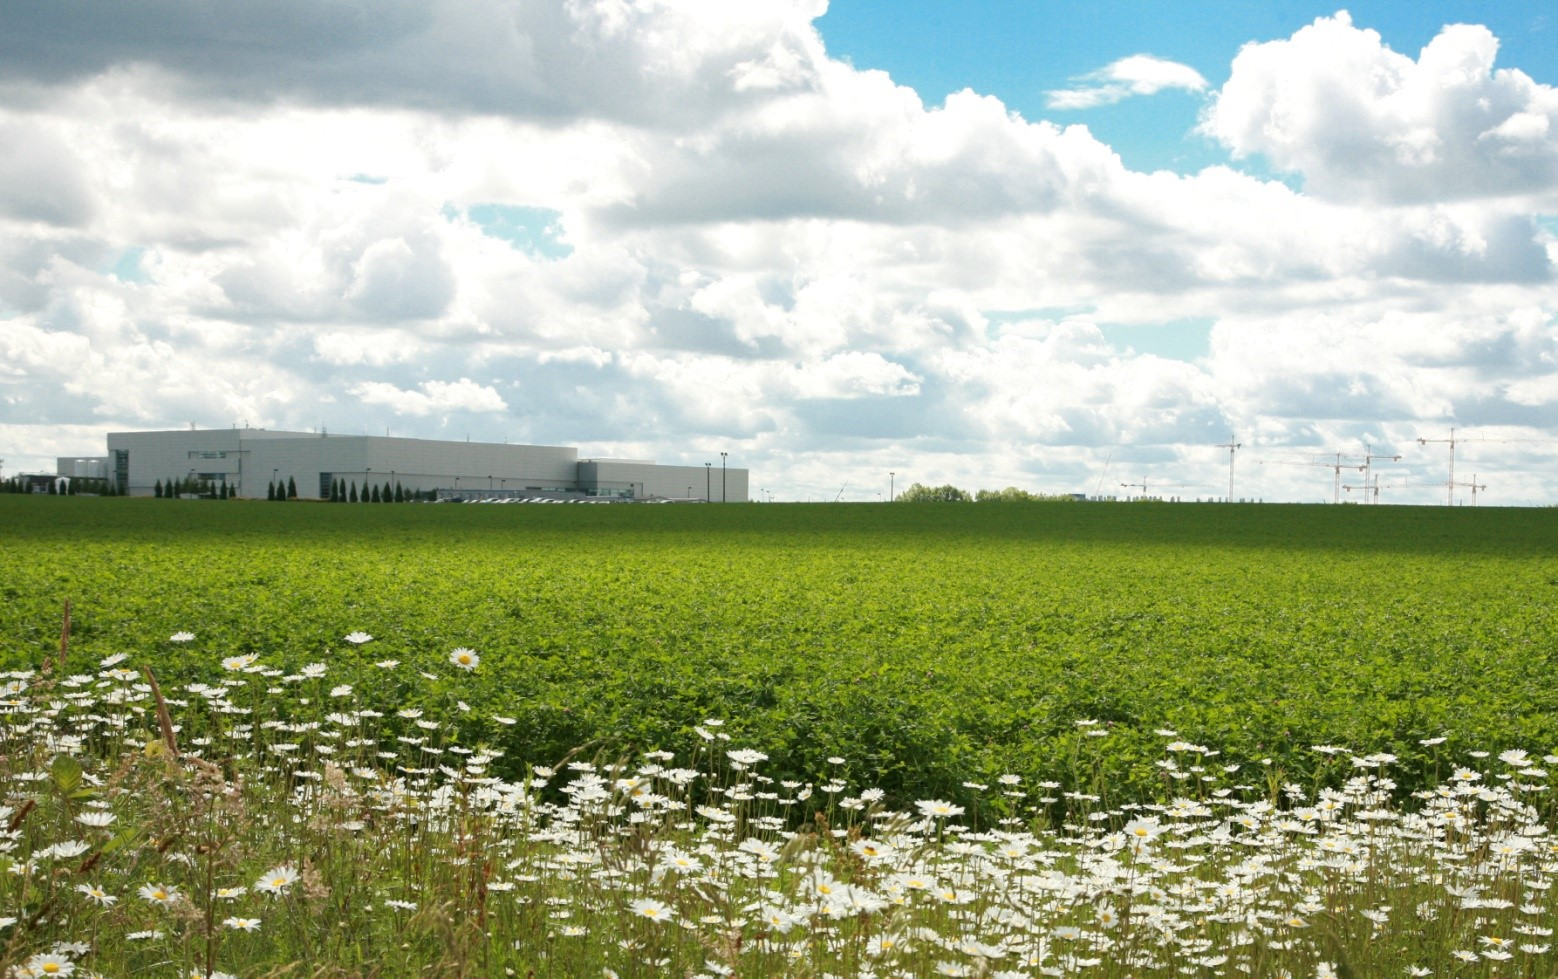 Vacant Land Image with Flowers